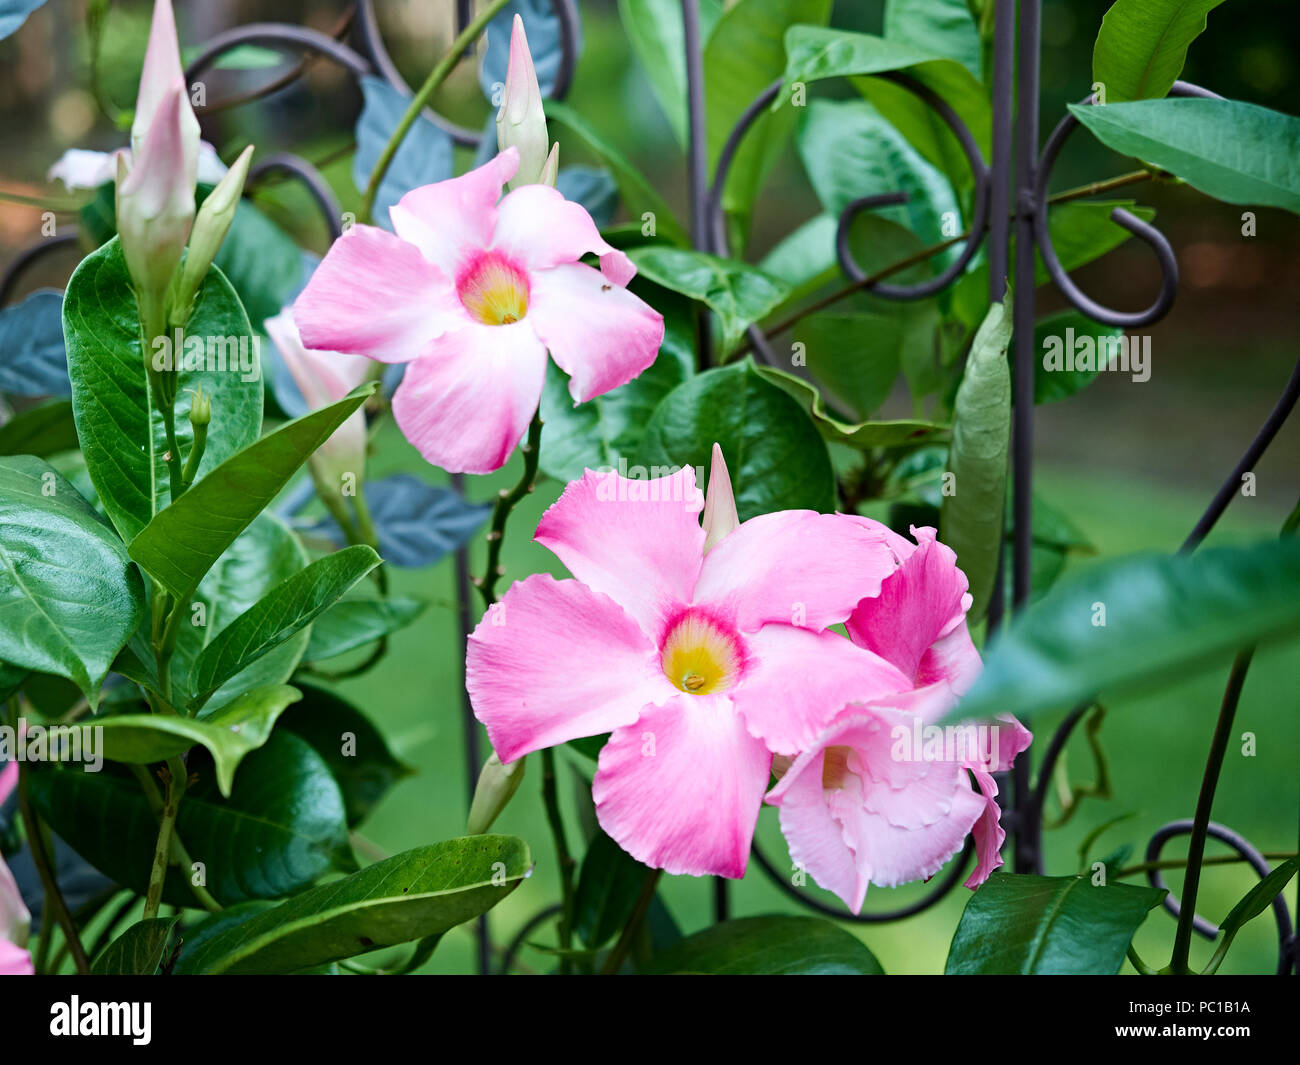 Climbing Flowering Vine Stock Photos Climbing Flowering Vine Stock